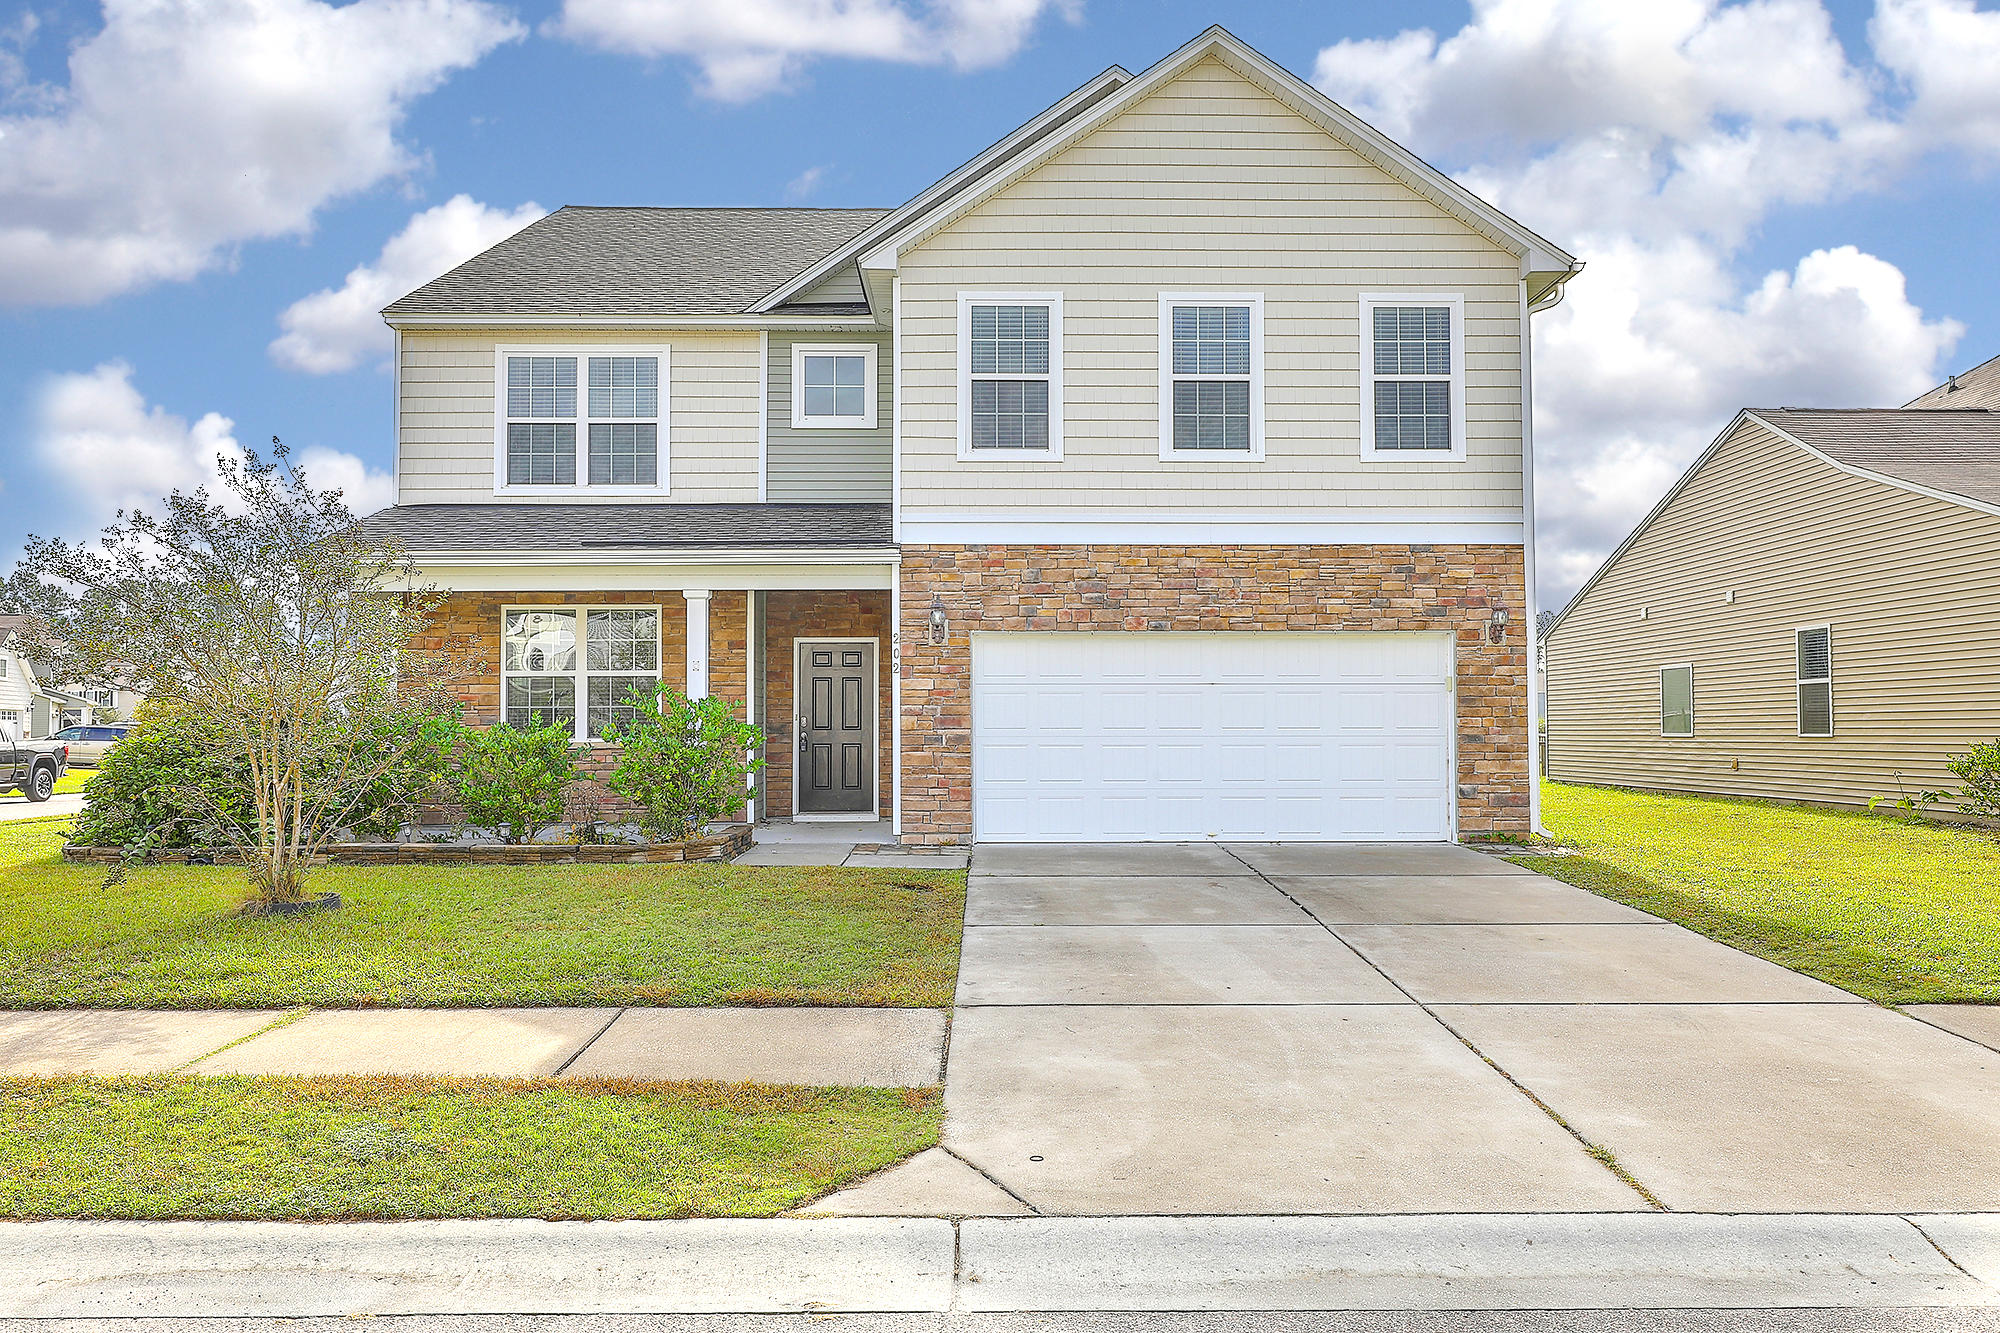 202 Decatur Drive Summerville, Sc 29486